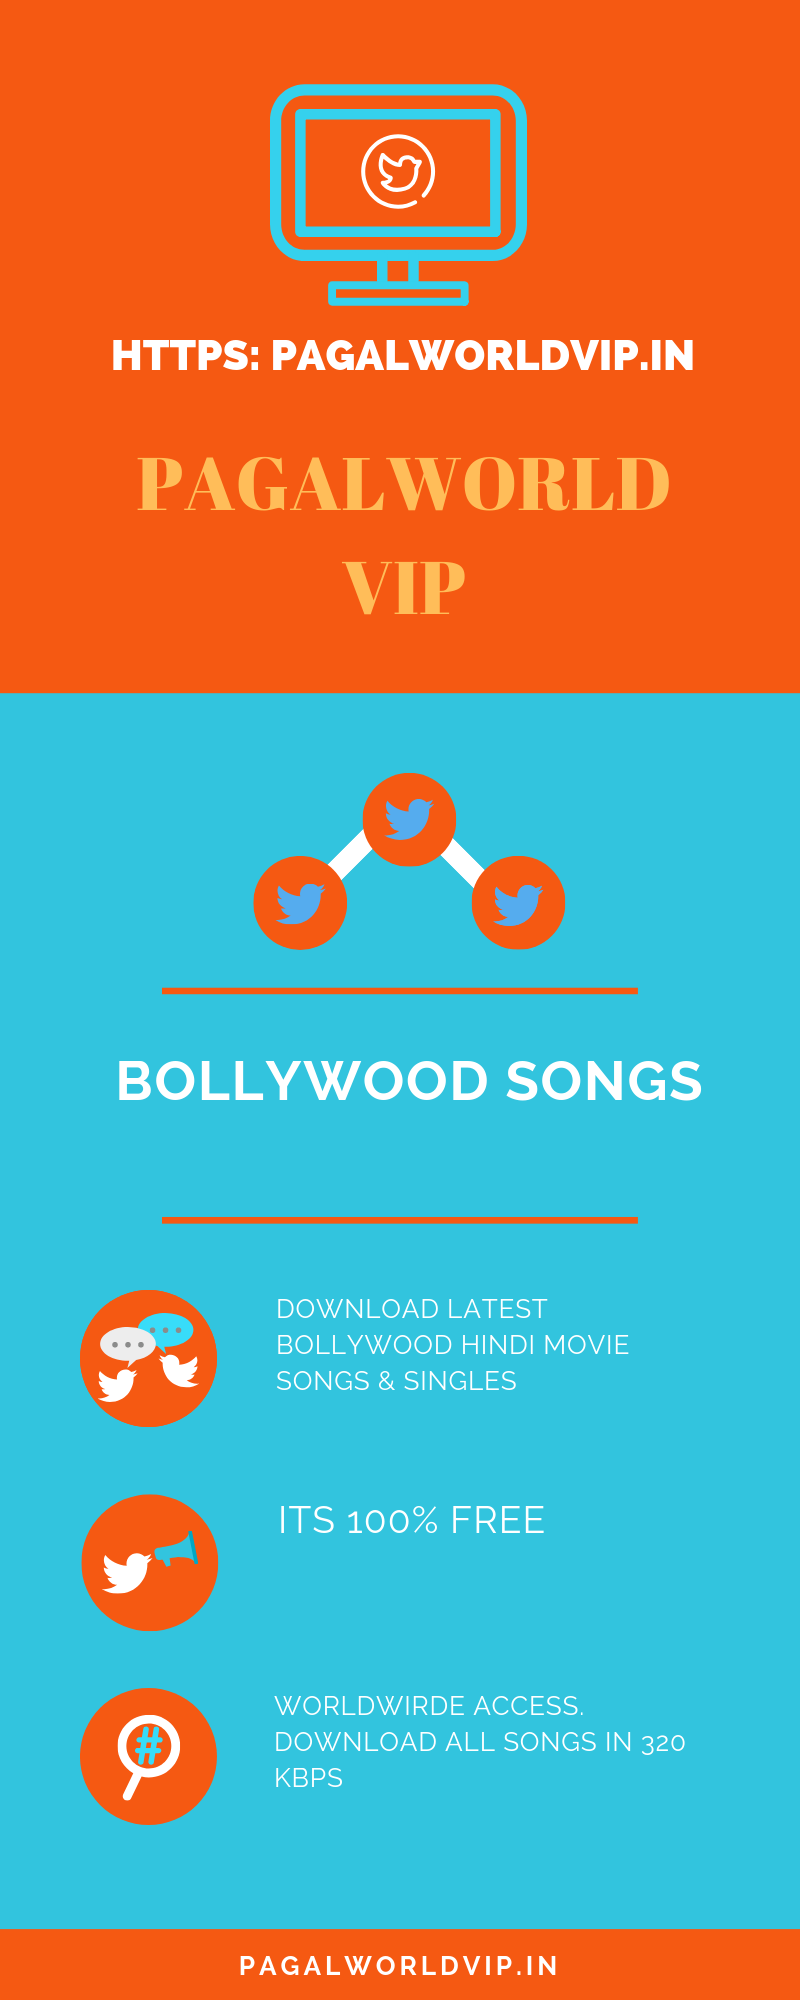 Pagalworld Vip Is An Indian Music Site Songs Bollywood Movie Songs Hindi Movie Song